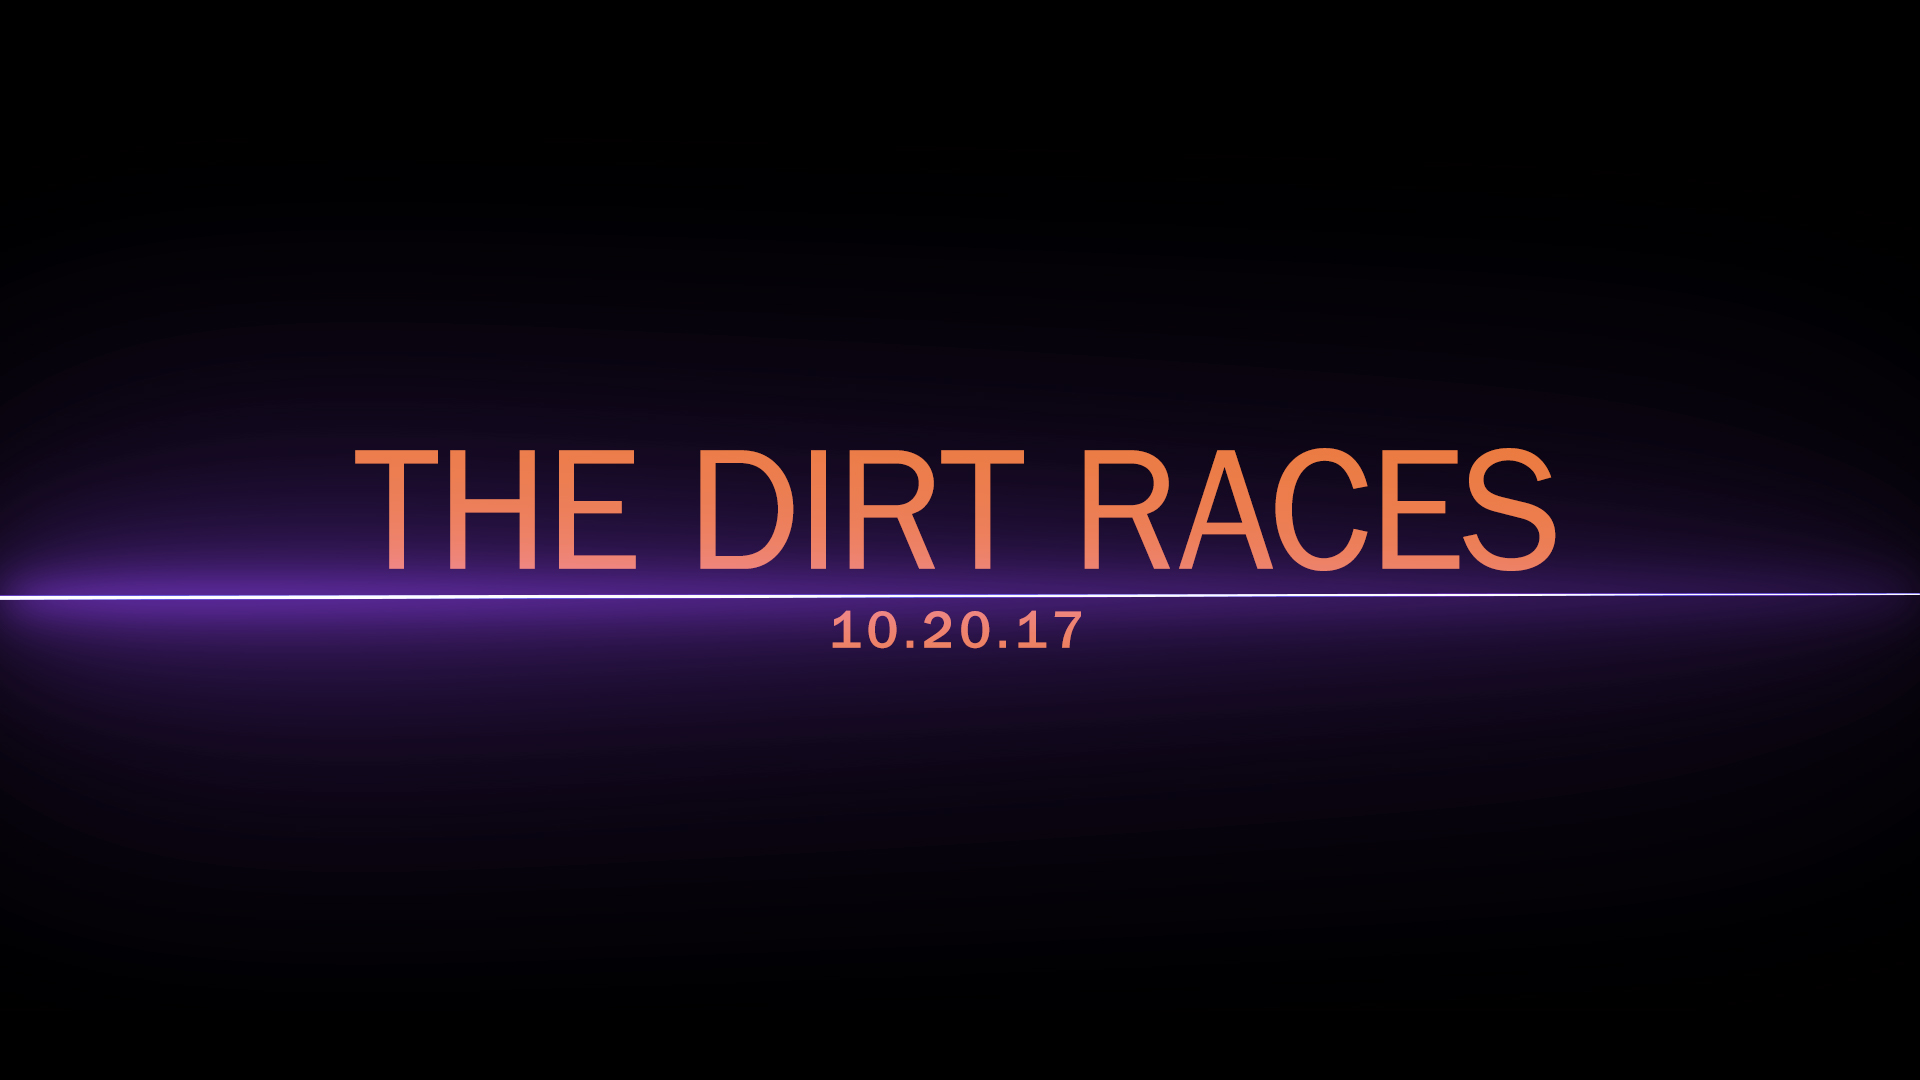 TCI: Breeders' Cup dirt races preview – 10/20/2017